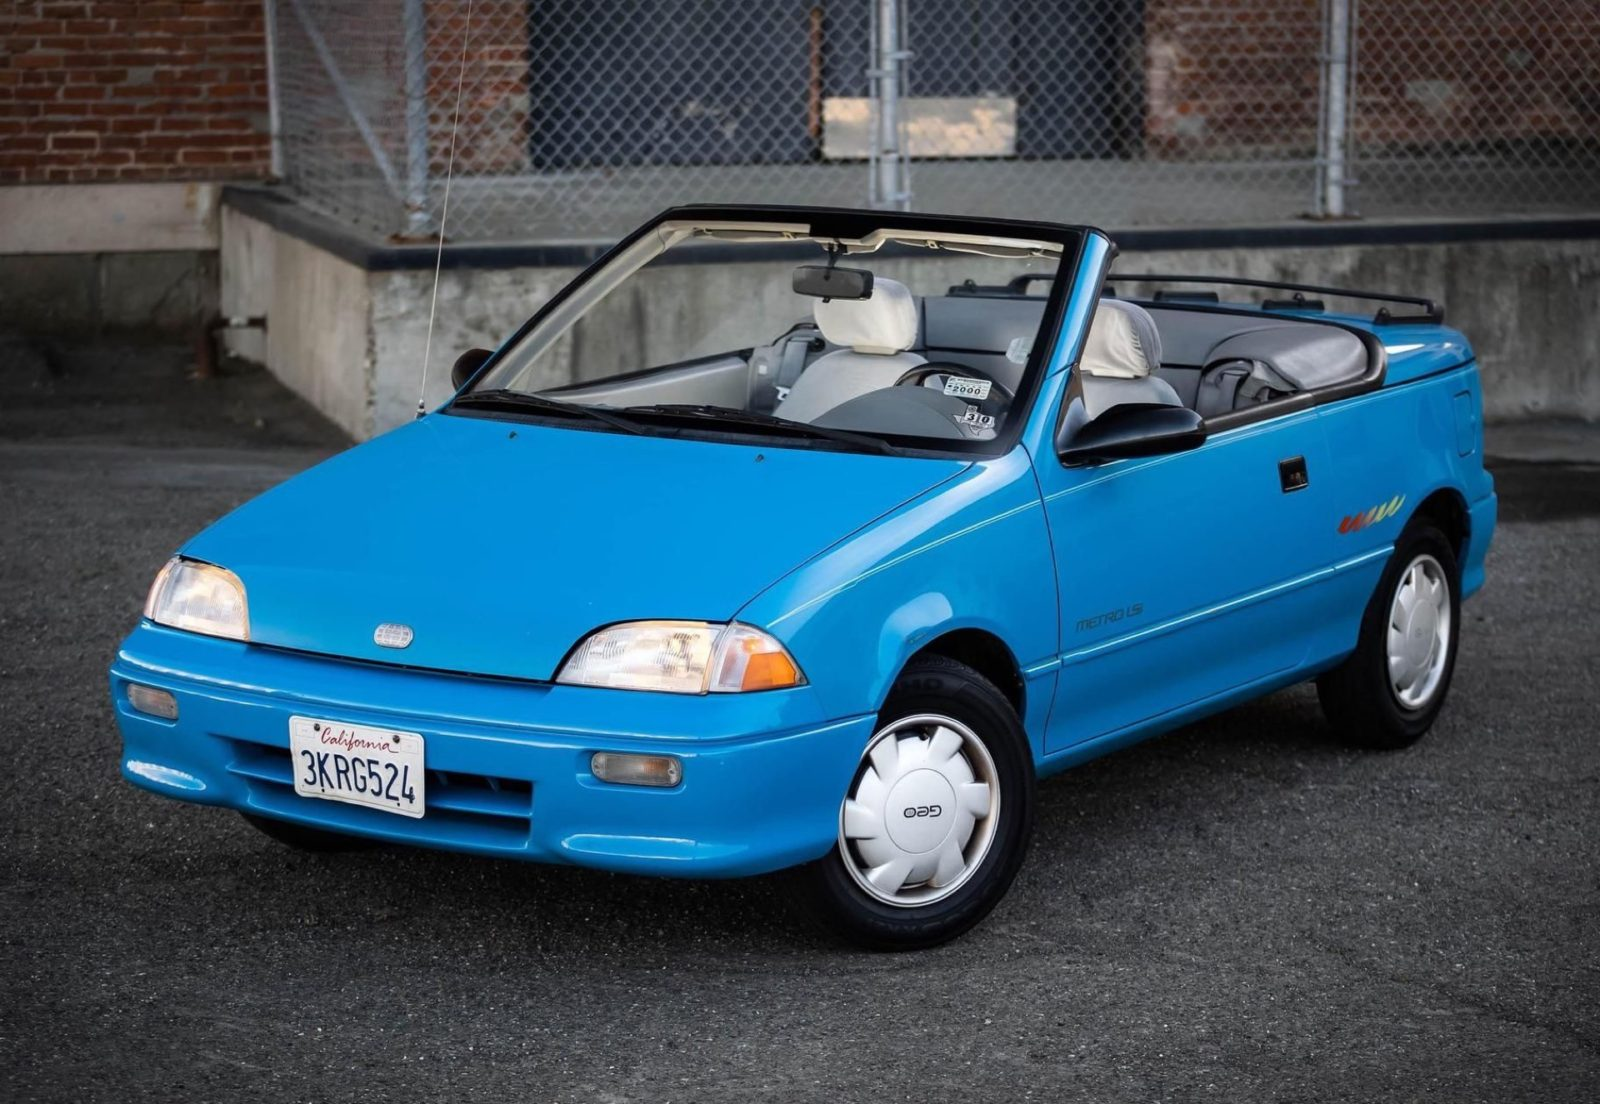 the-geo-metro-convertible-is-a-laughably-mediocre-car-from-the-'80s